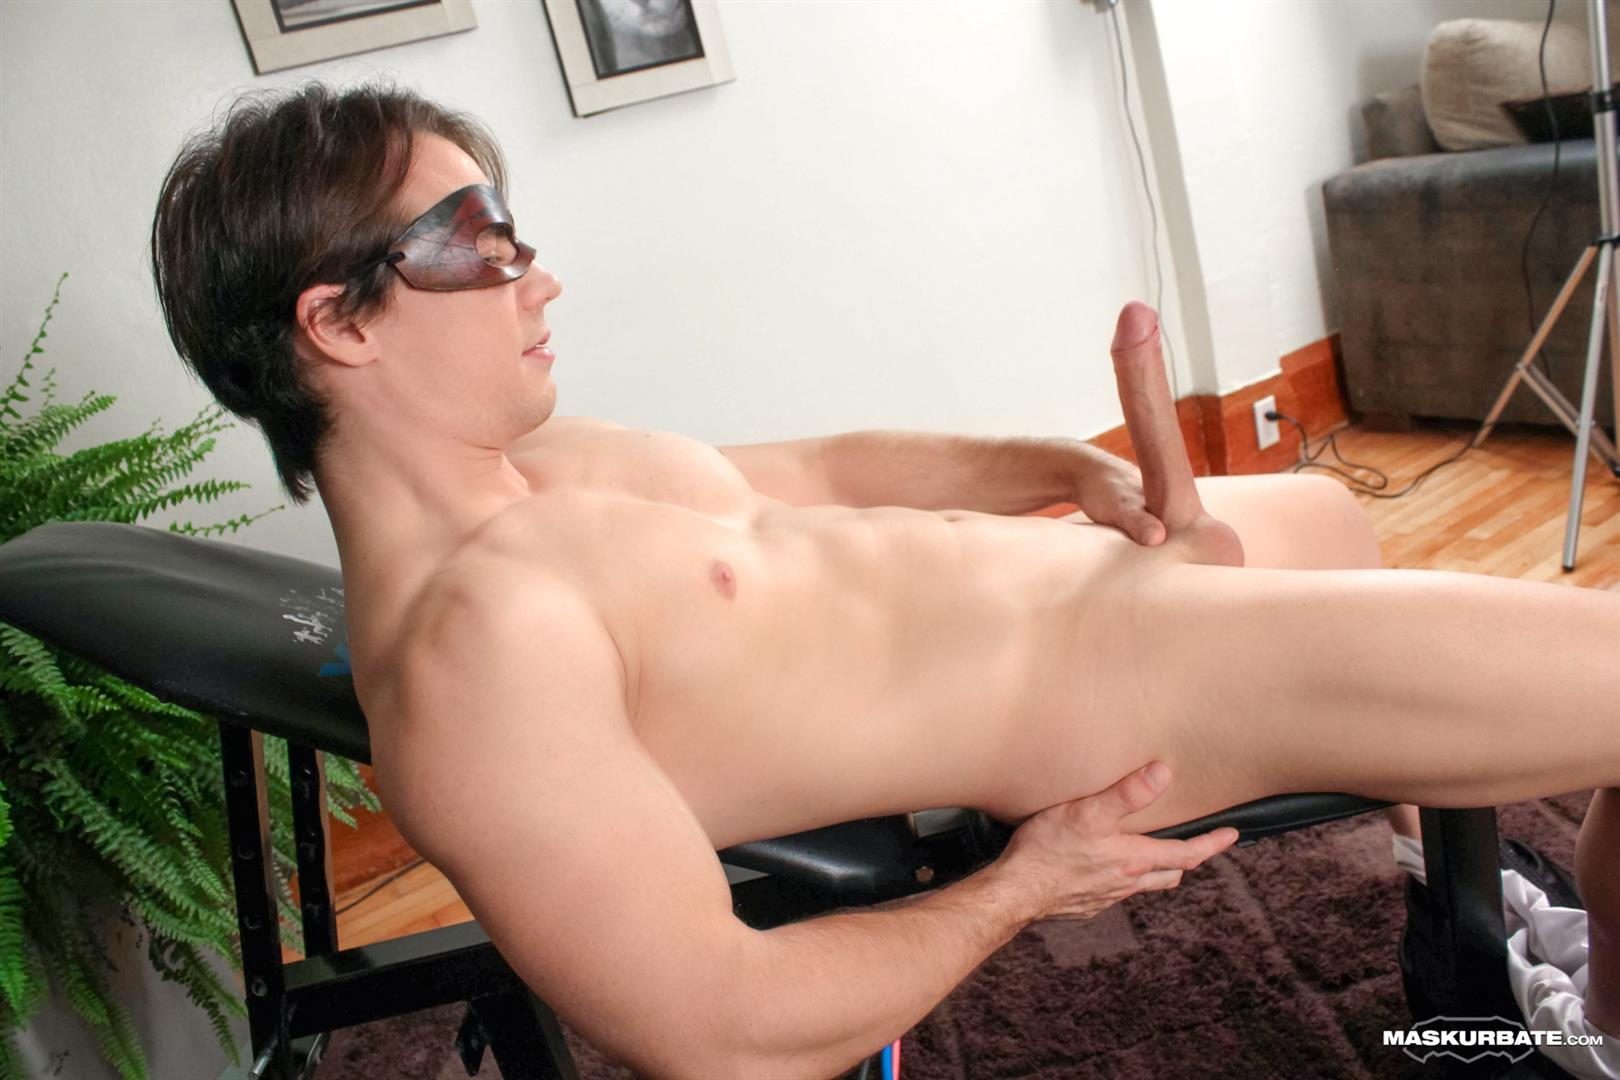 Maskurbate-Ricky-Big-Uncut-Cock-Jerk-Off-Anonymous-Amateur-Gay-Porn-12 Maskurbate Hunk Ricky Jerking Off His Huge Uncut Cock